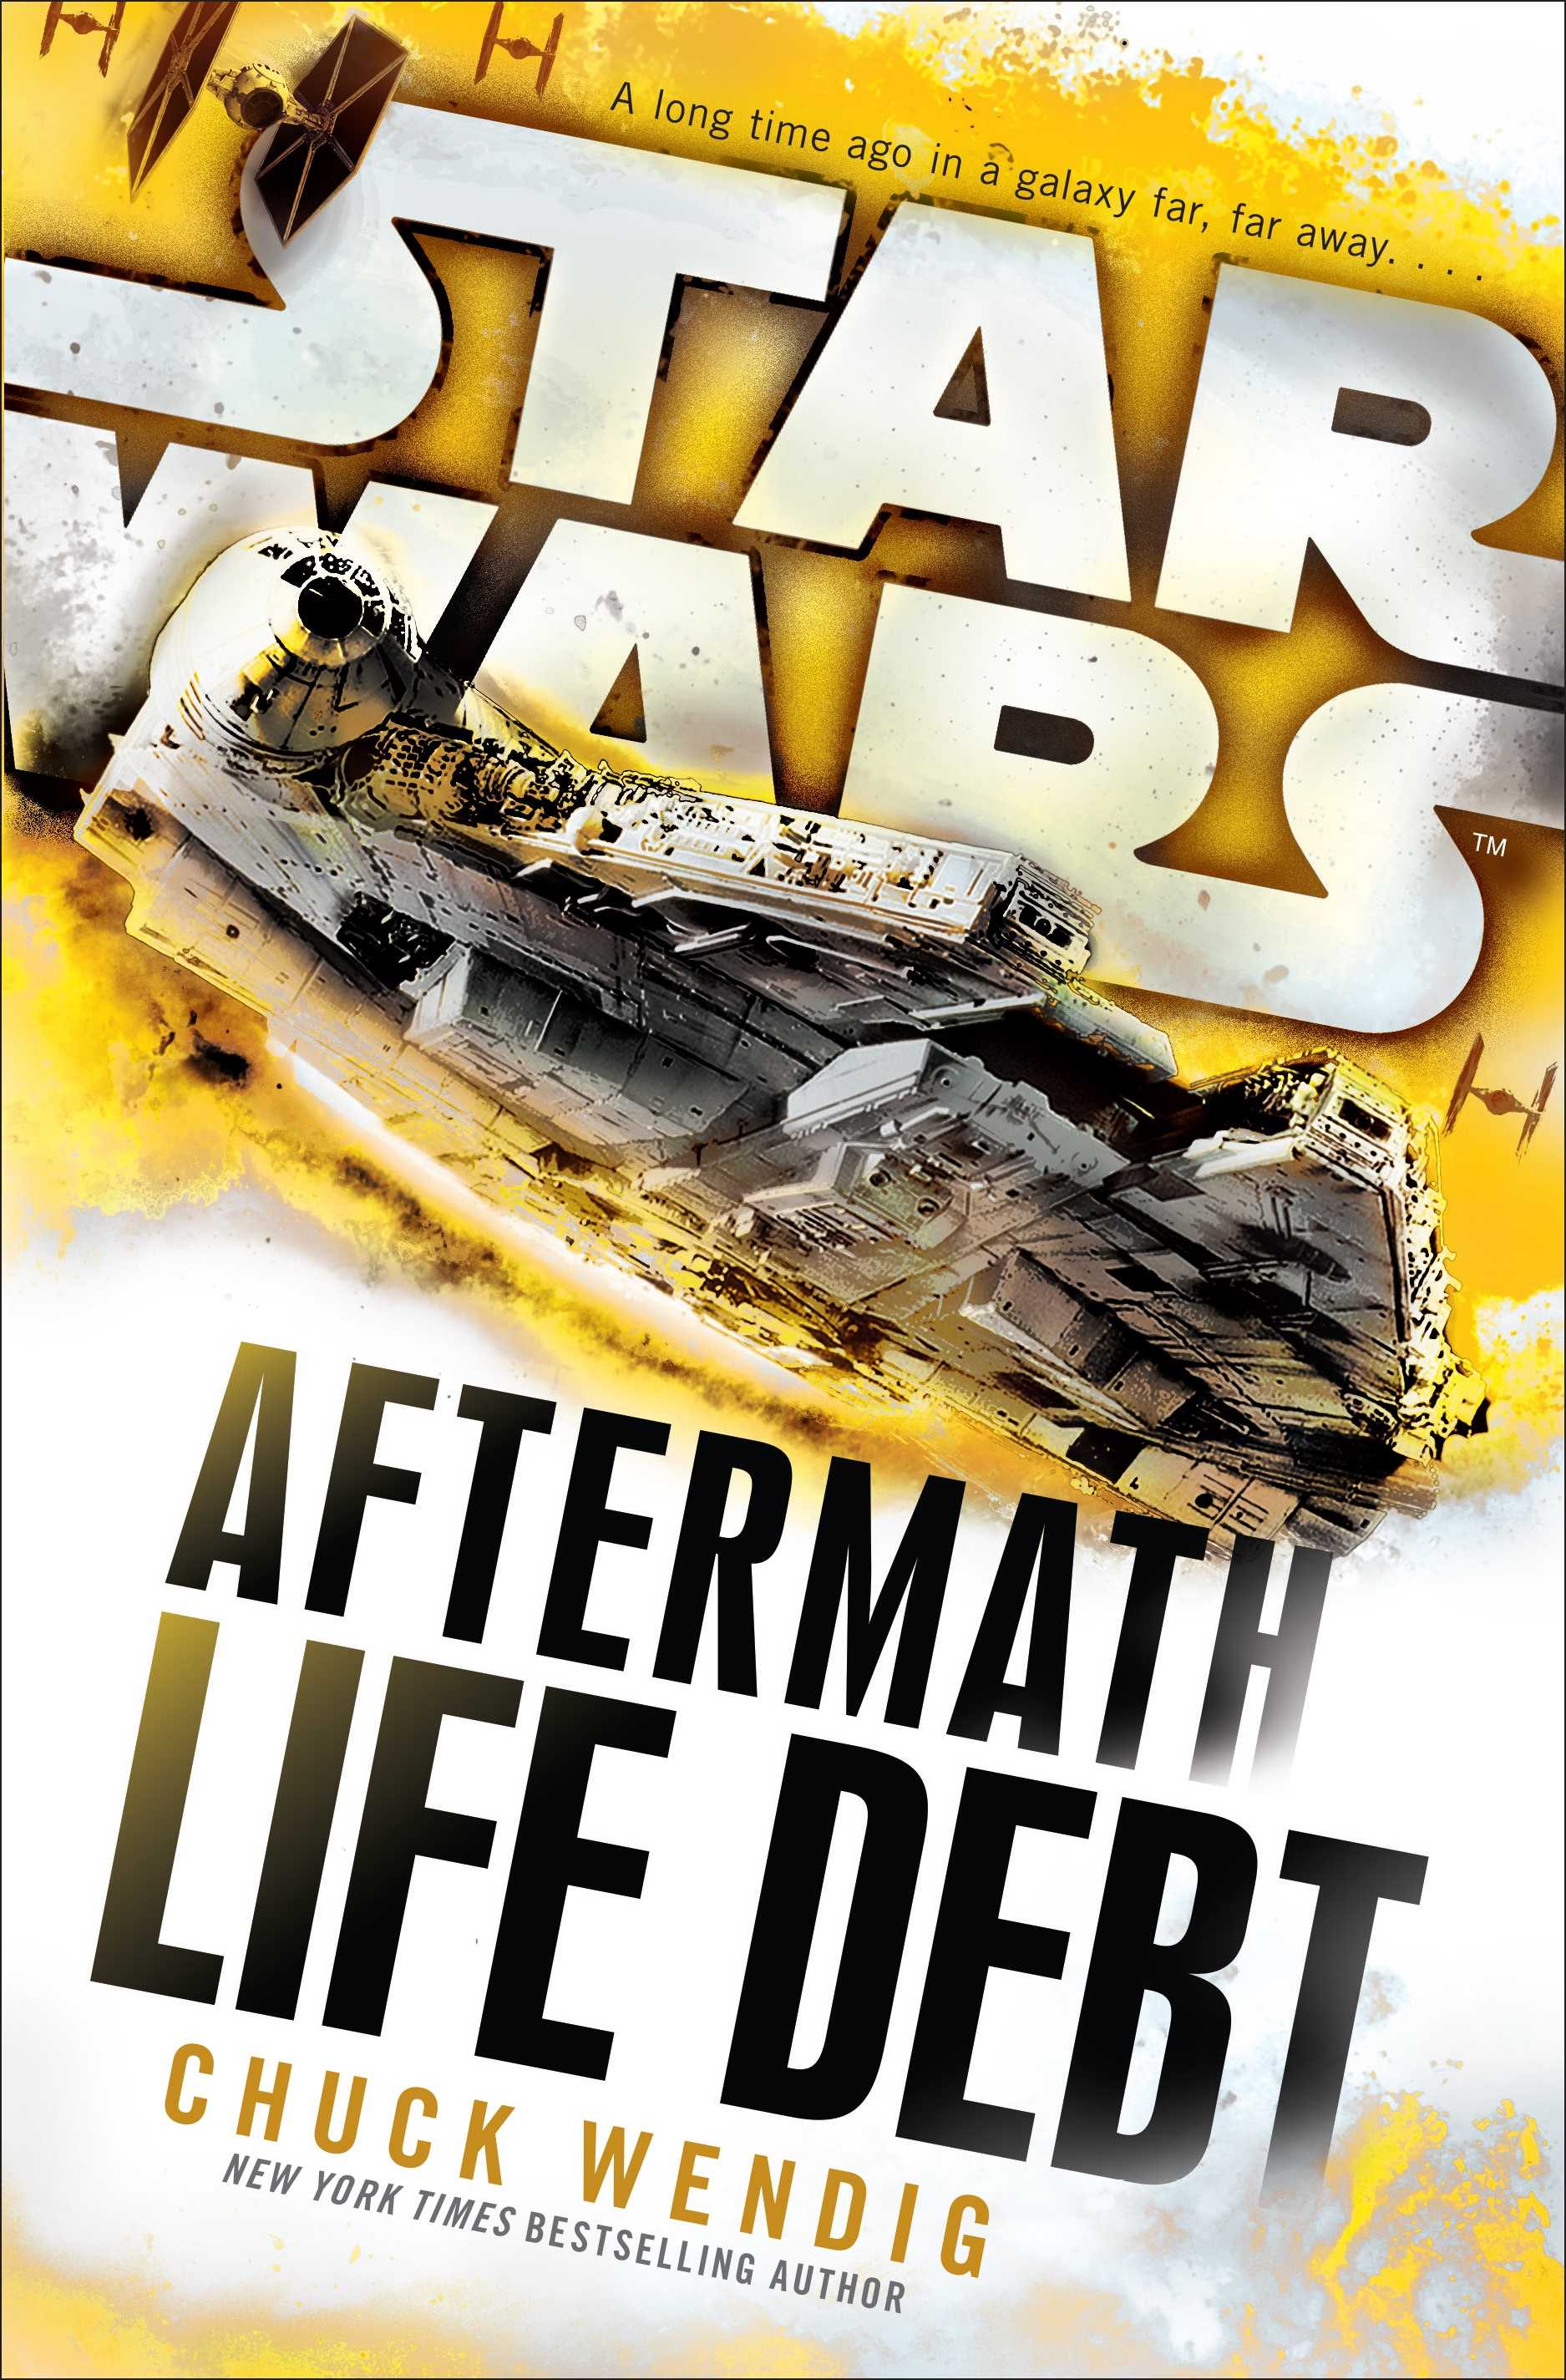 Book Review | Star Wars: Aftermath Life Debt